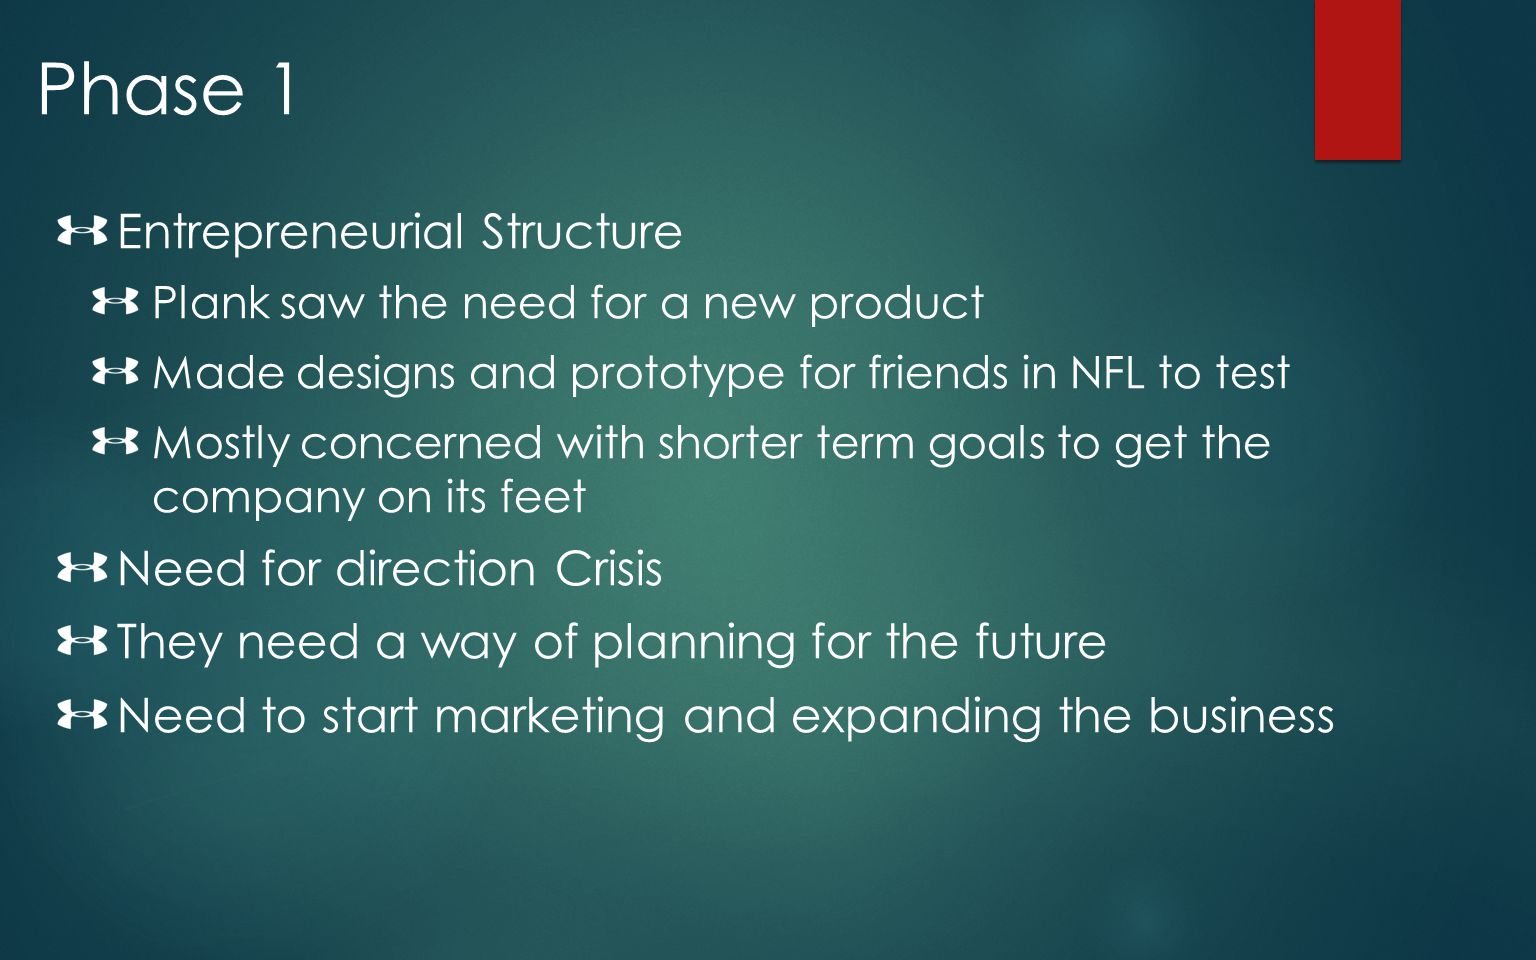 Phase 1 Entrepreneurial Structure Need for direction Crisis